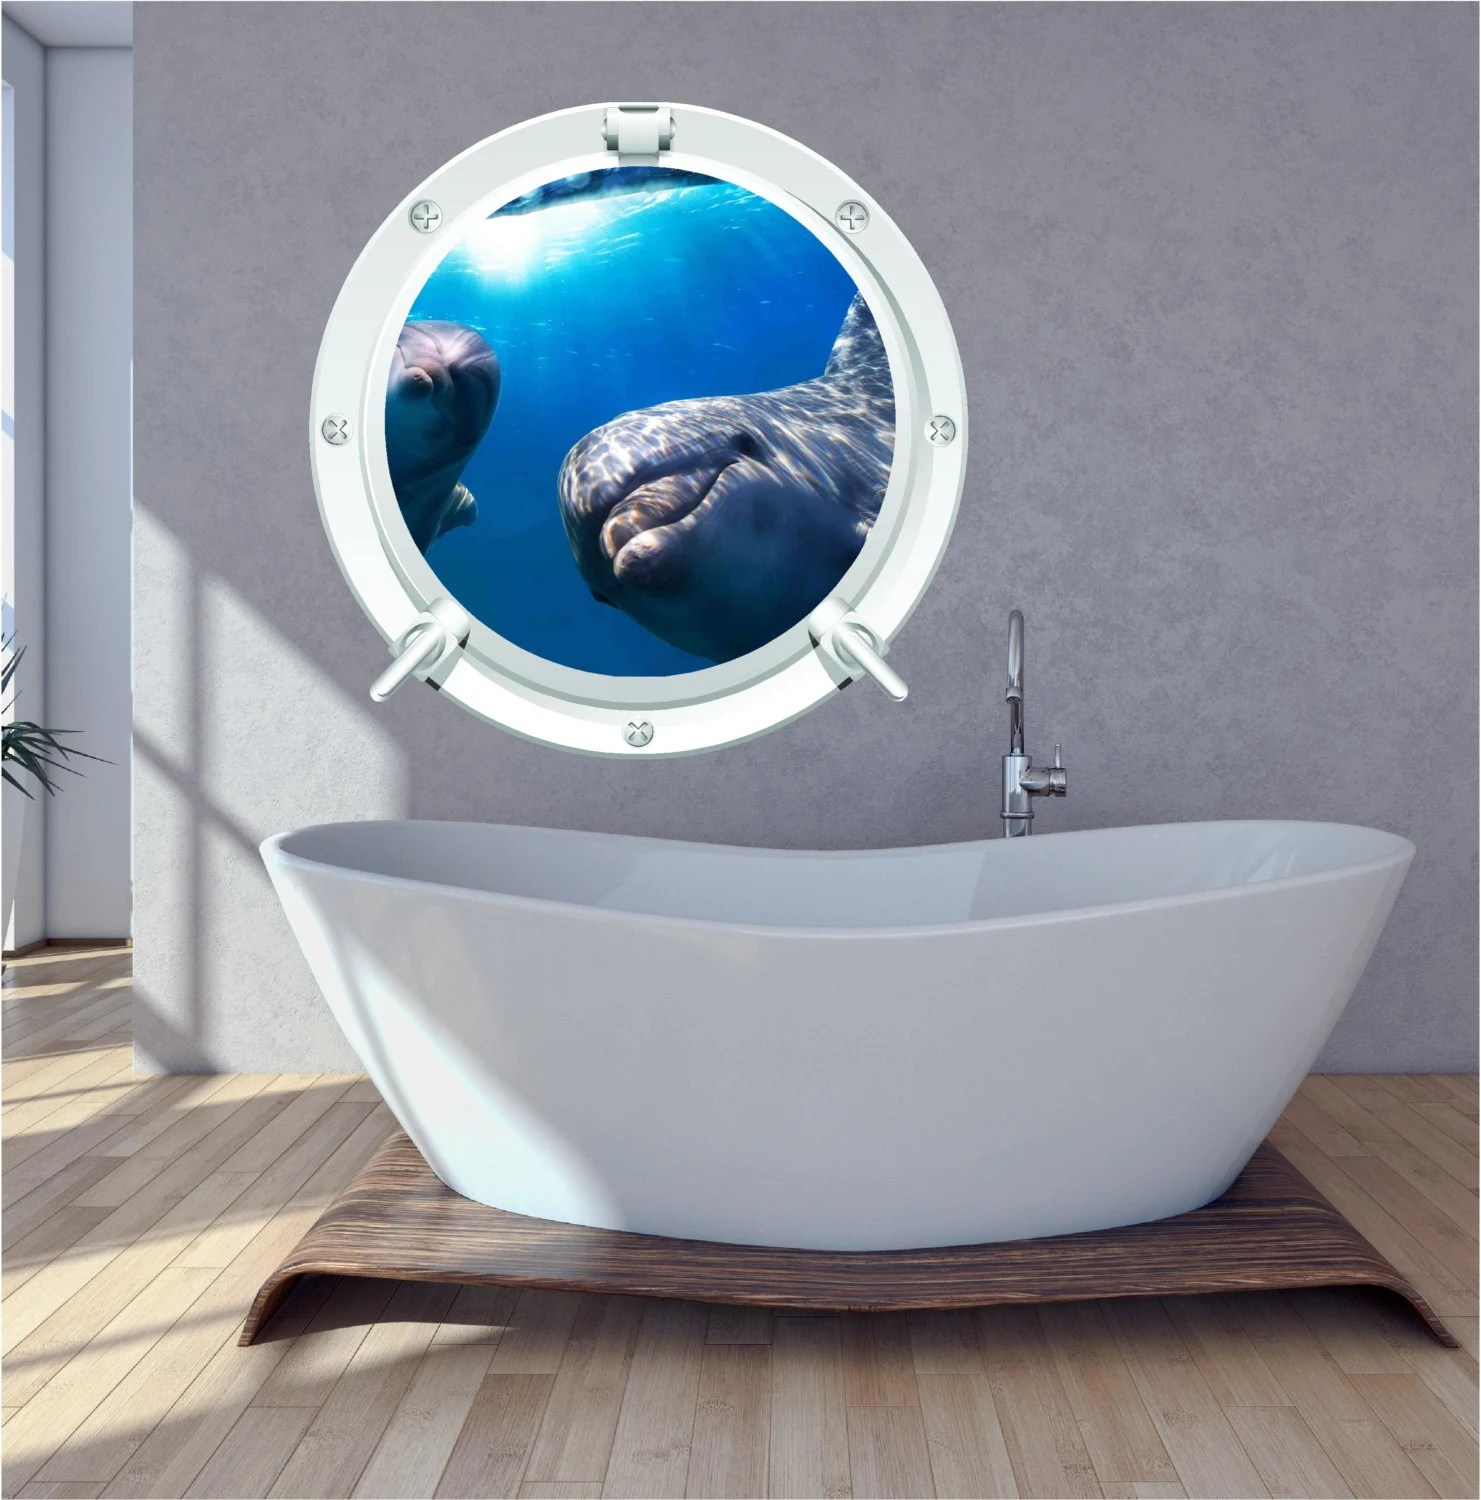 Best Dolphin Bathroom Bedroom Porthole Wall Art Sticker Decal Under This Month